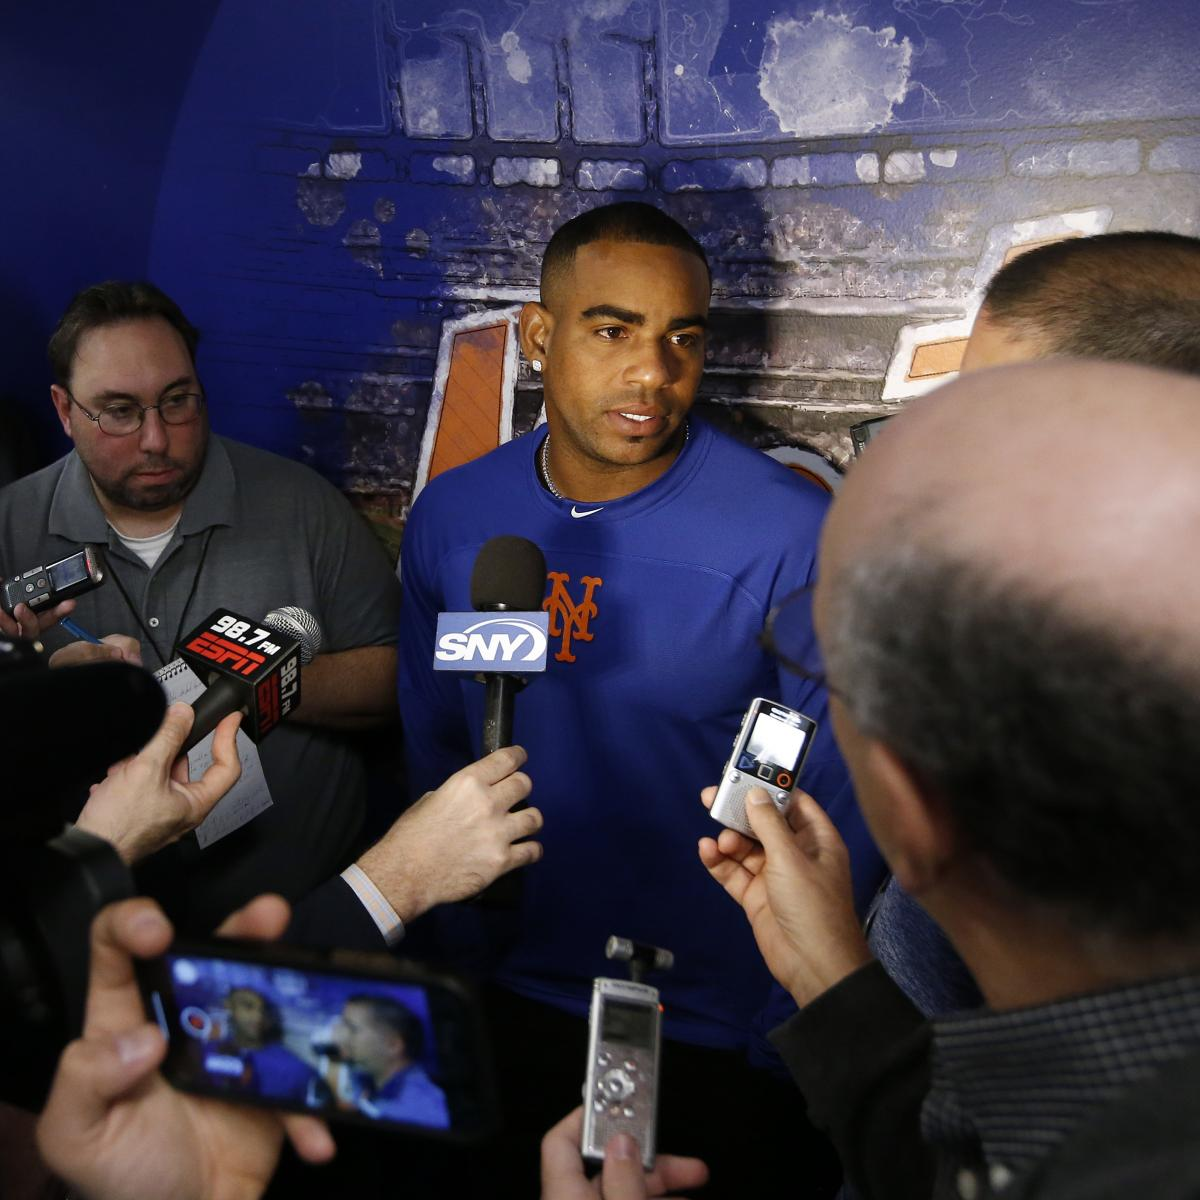 Mets Star Yoenis Cespedes Says He Won't Talk to the Media All Season